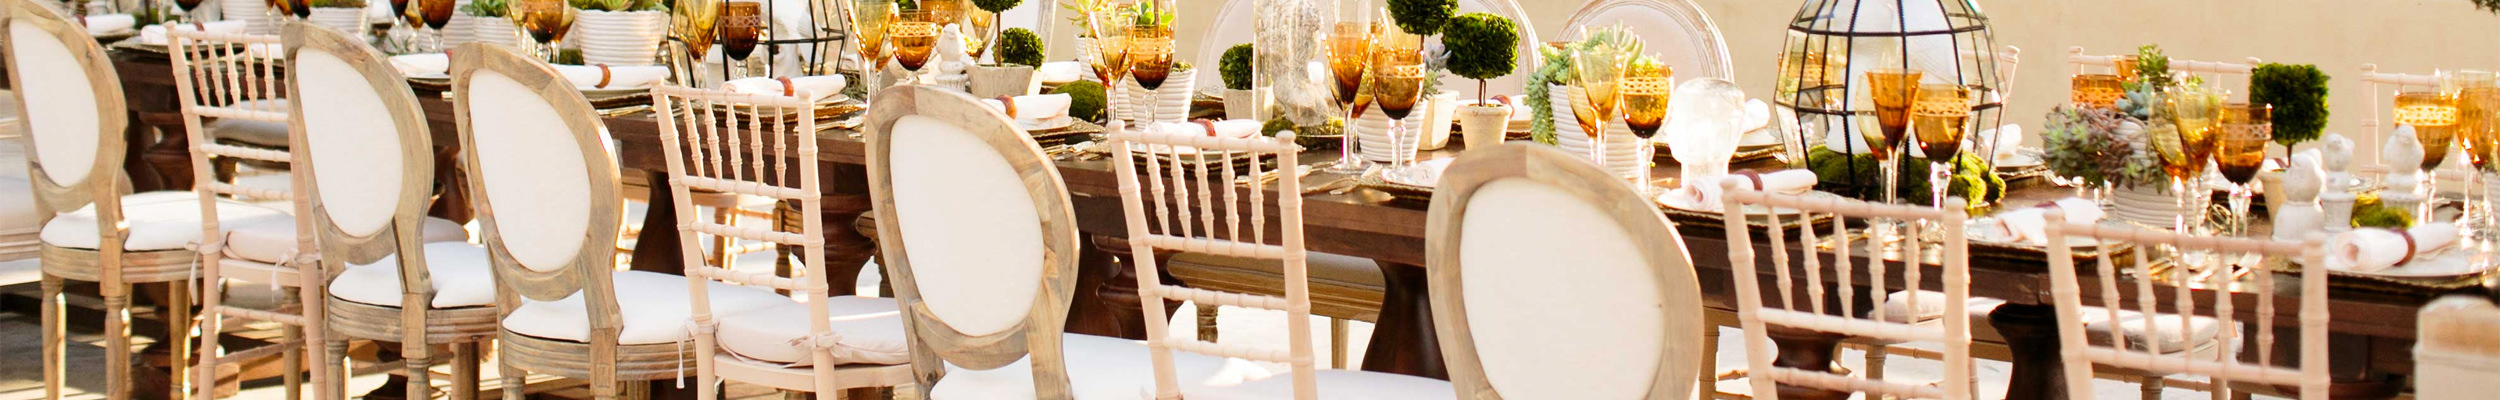 Rustic Glam Dinner Event